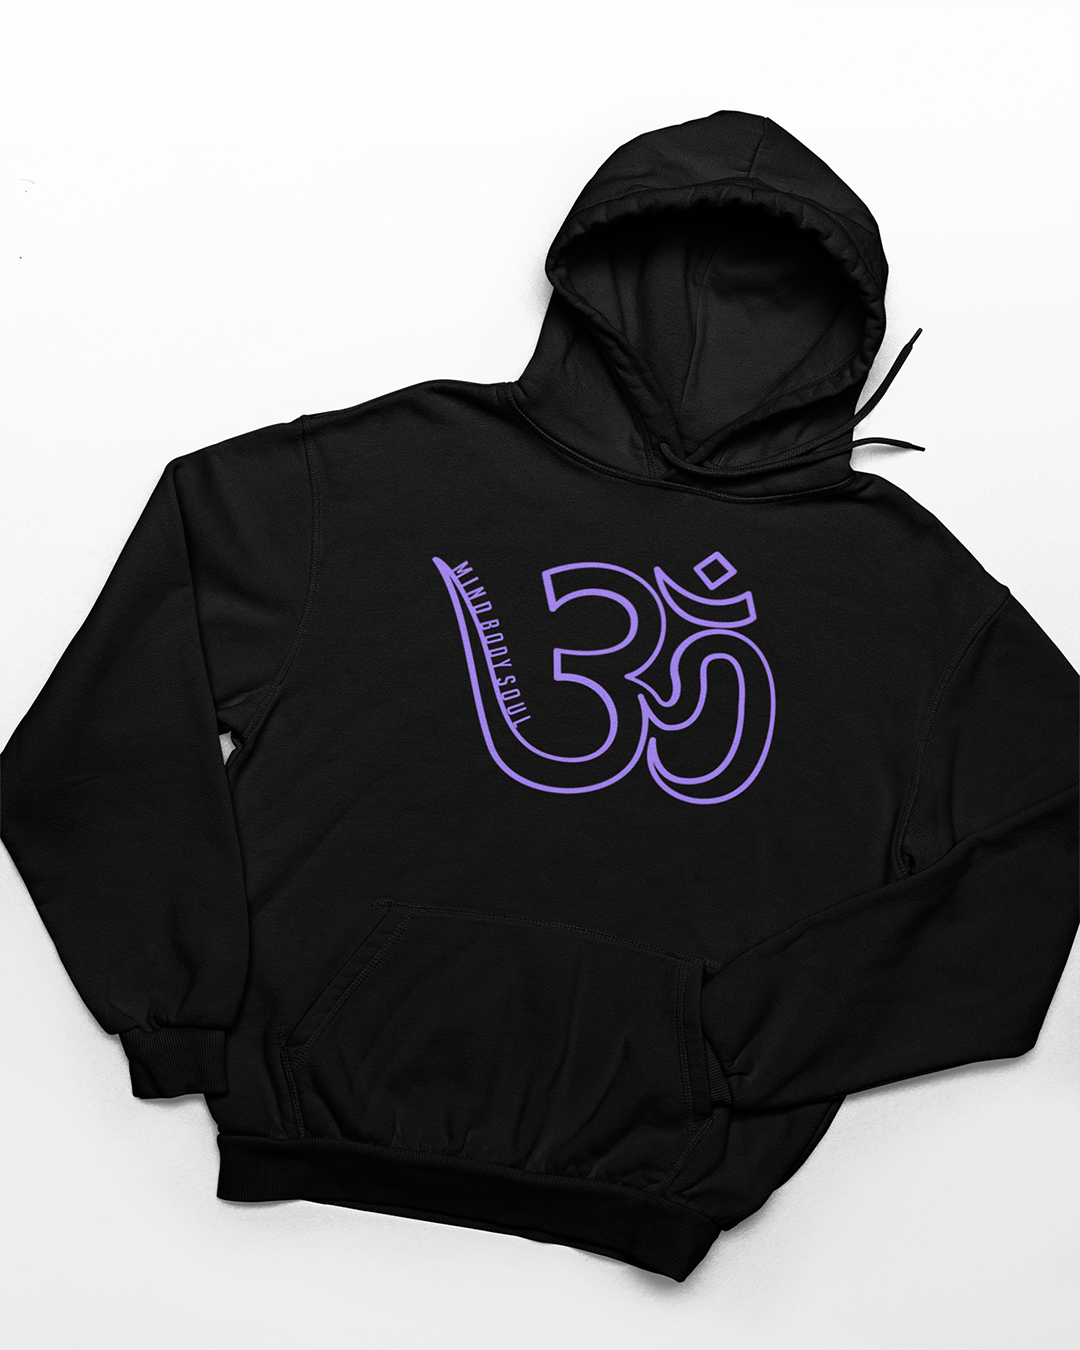 OM - Mind Body Soul Hoodie - Our Chakras